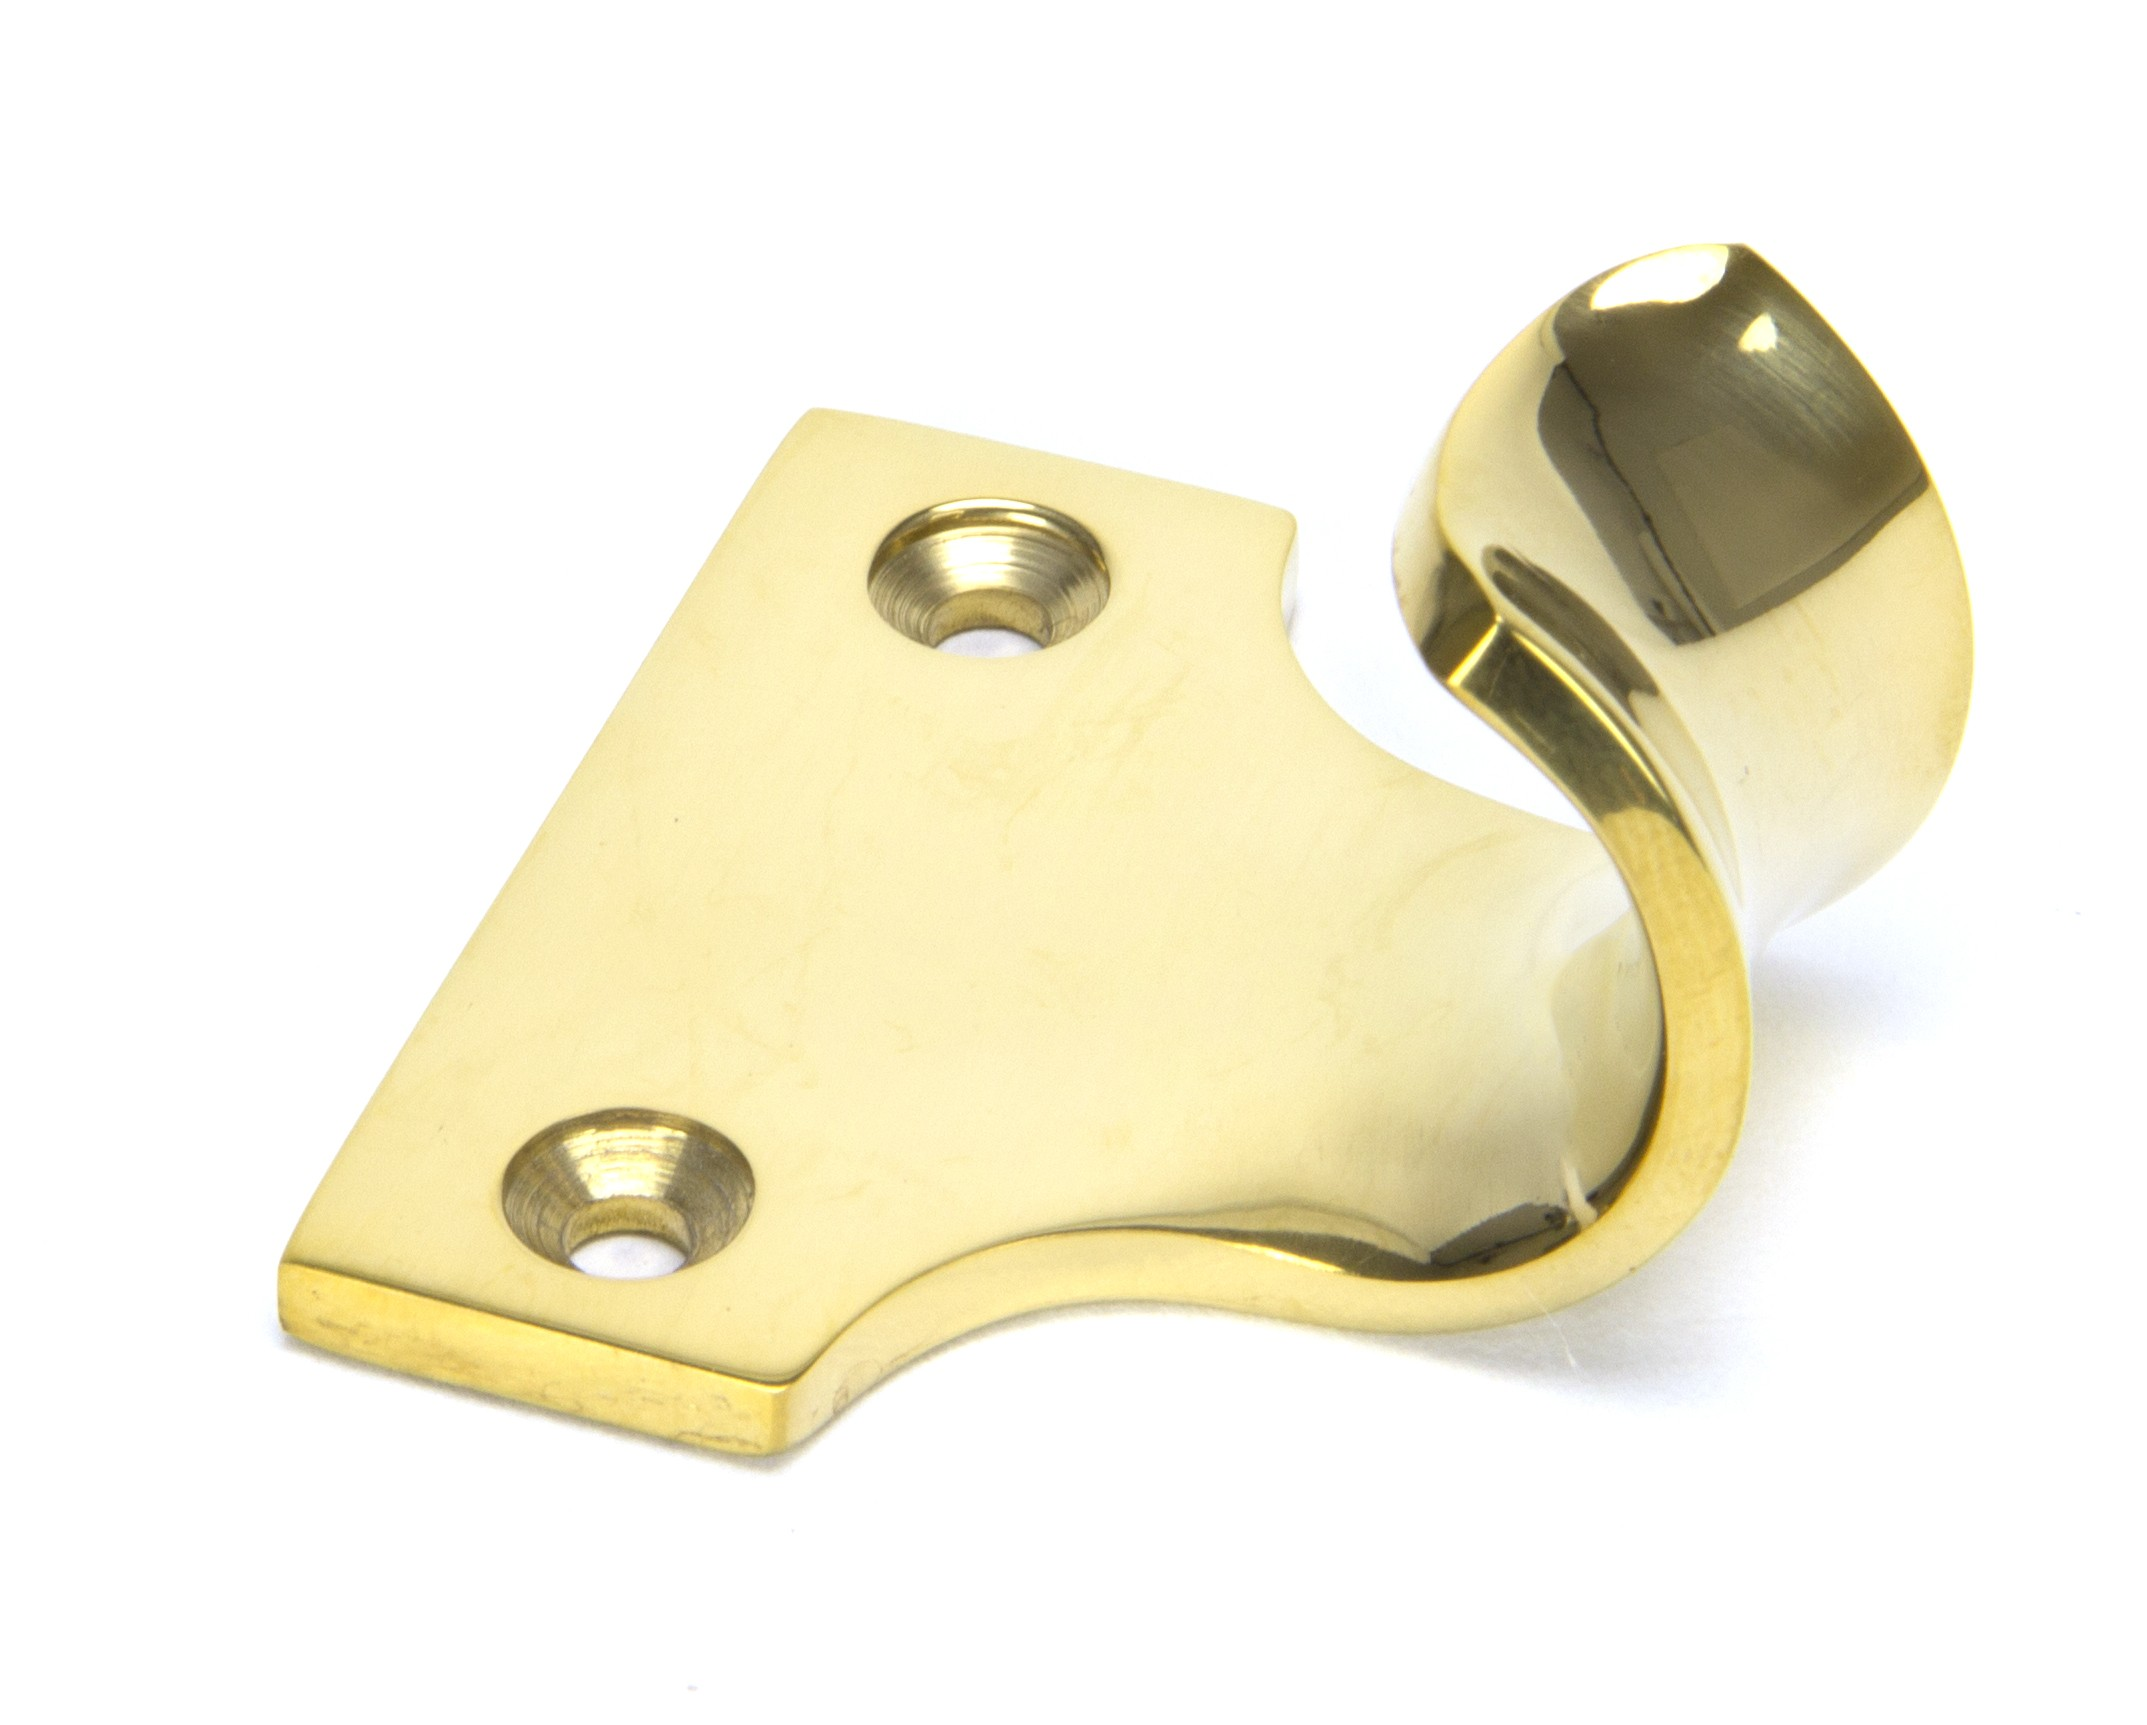 ANVIL - Polished Brass Sash Lift